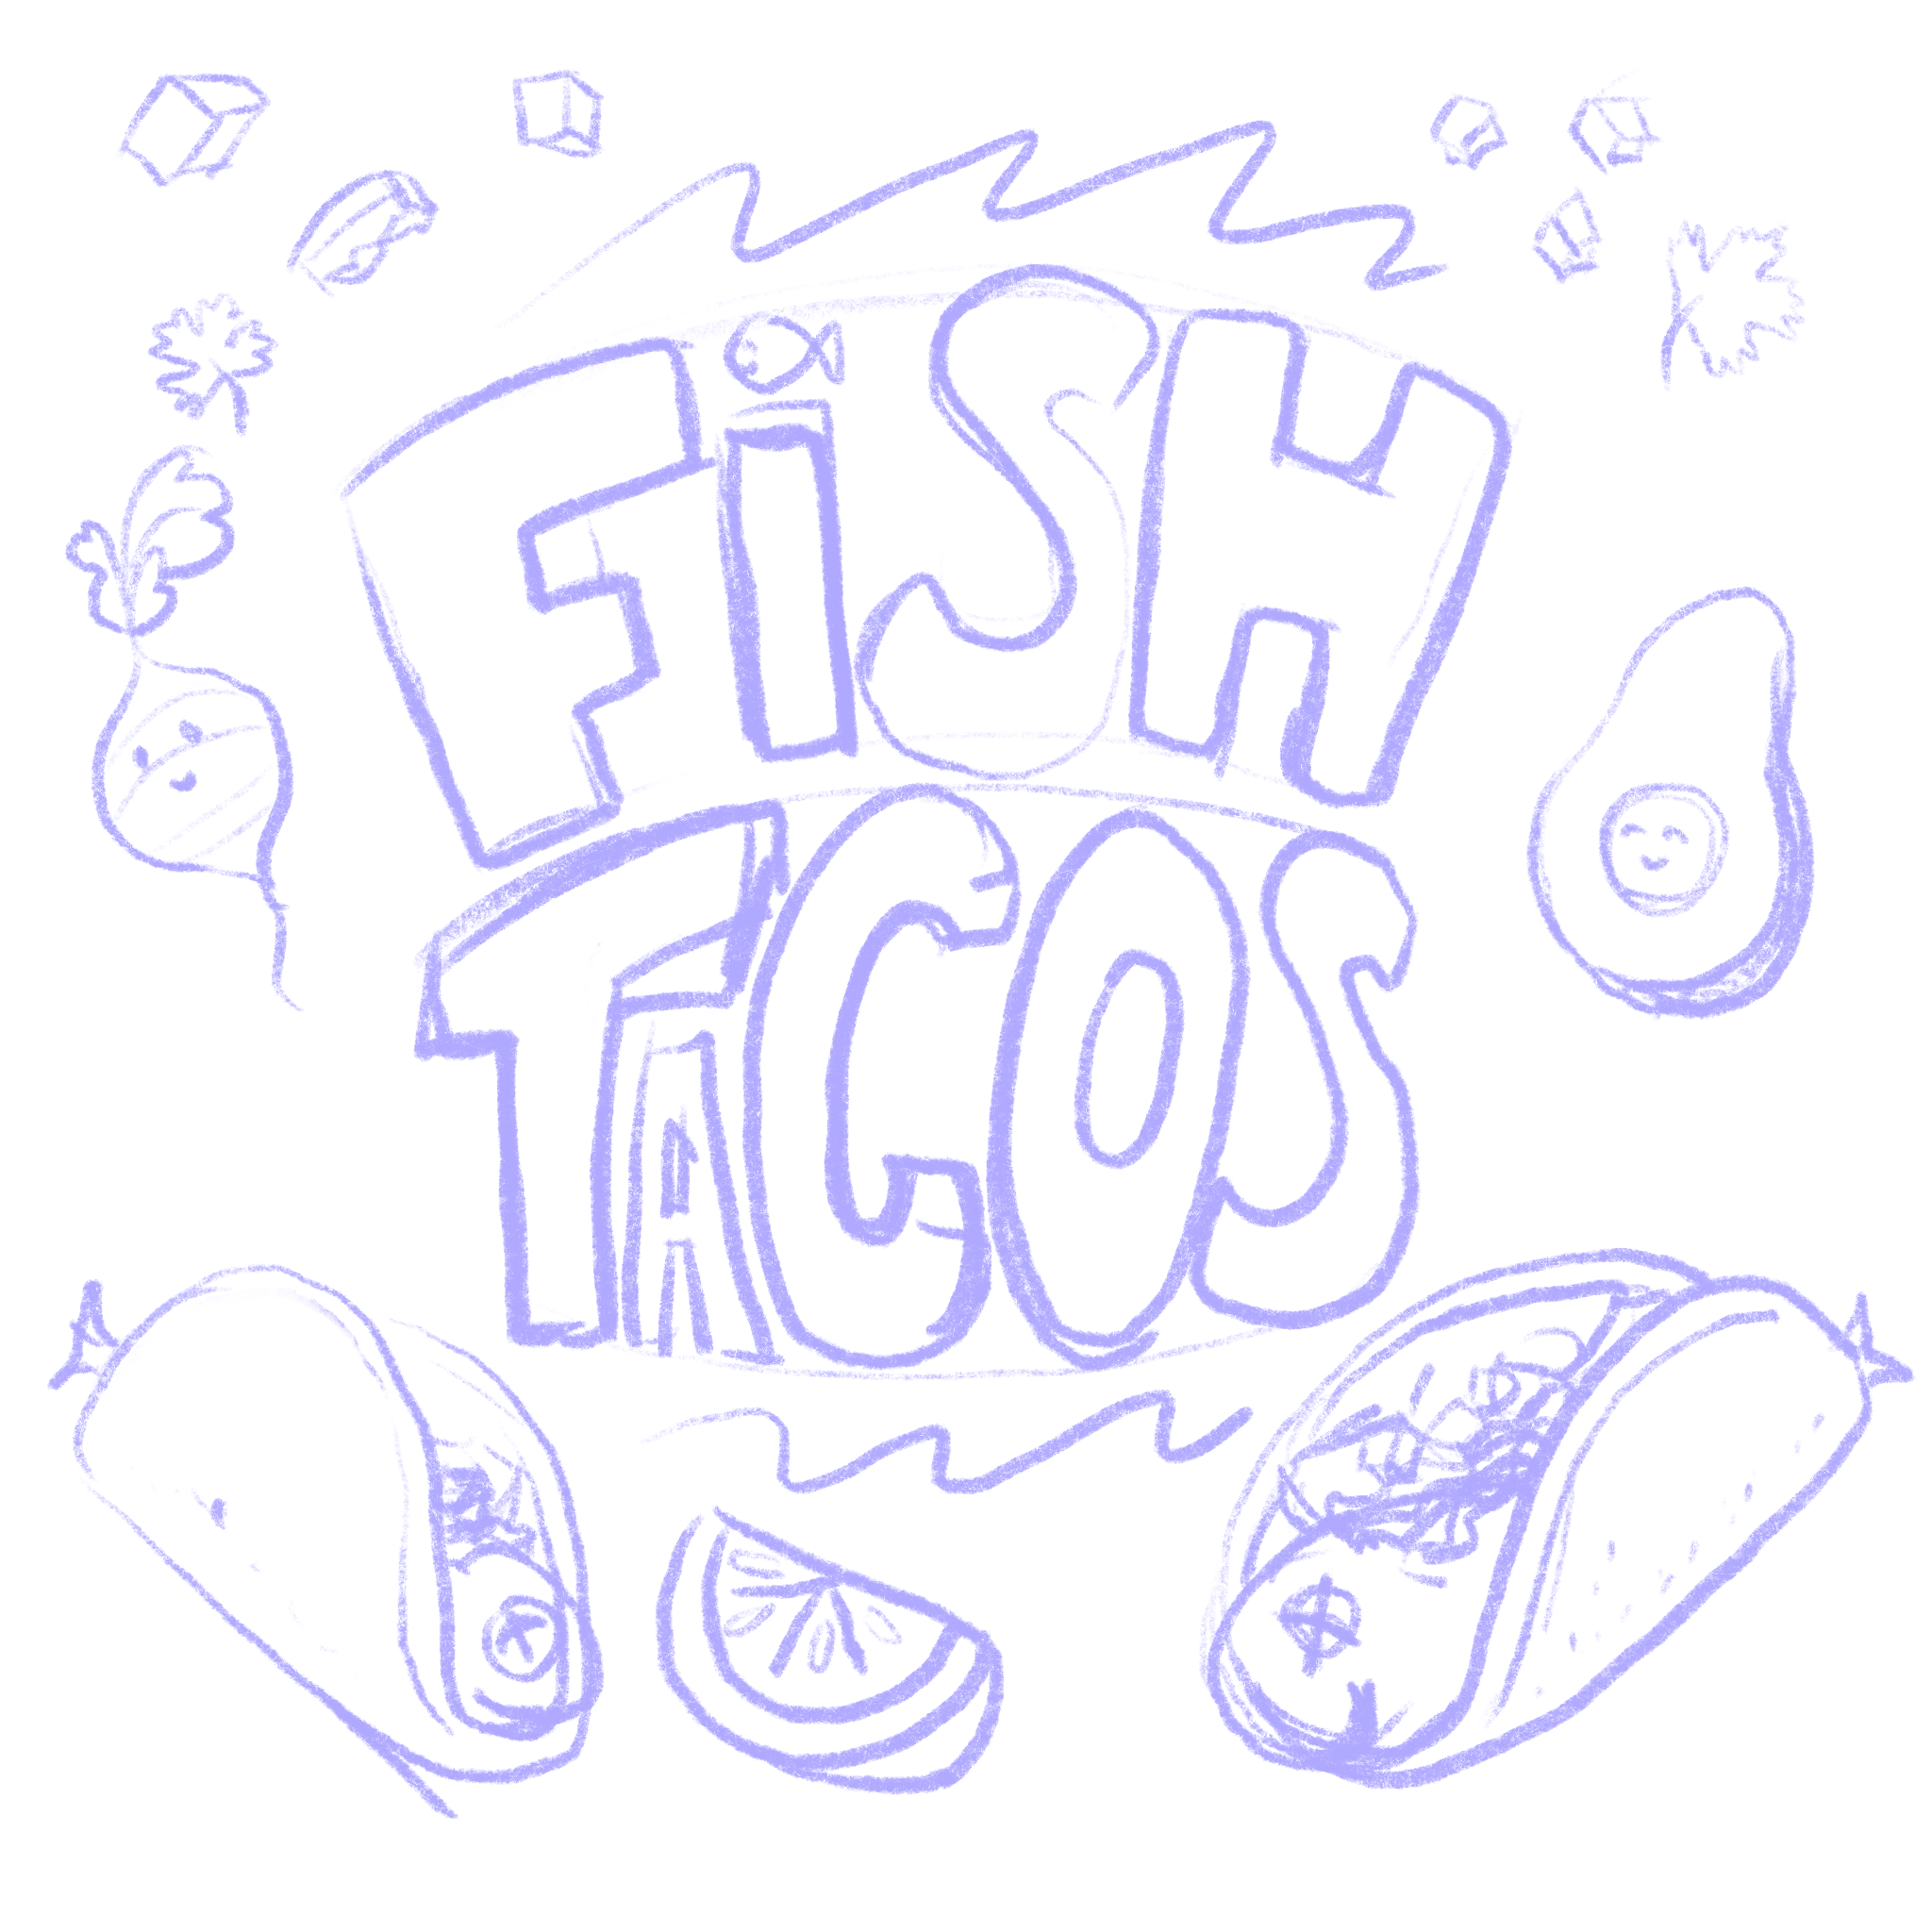 pencil drawing of fish tacos